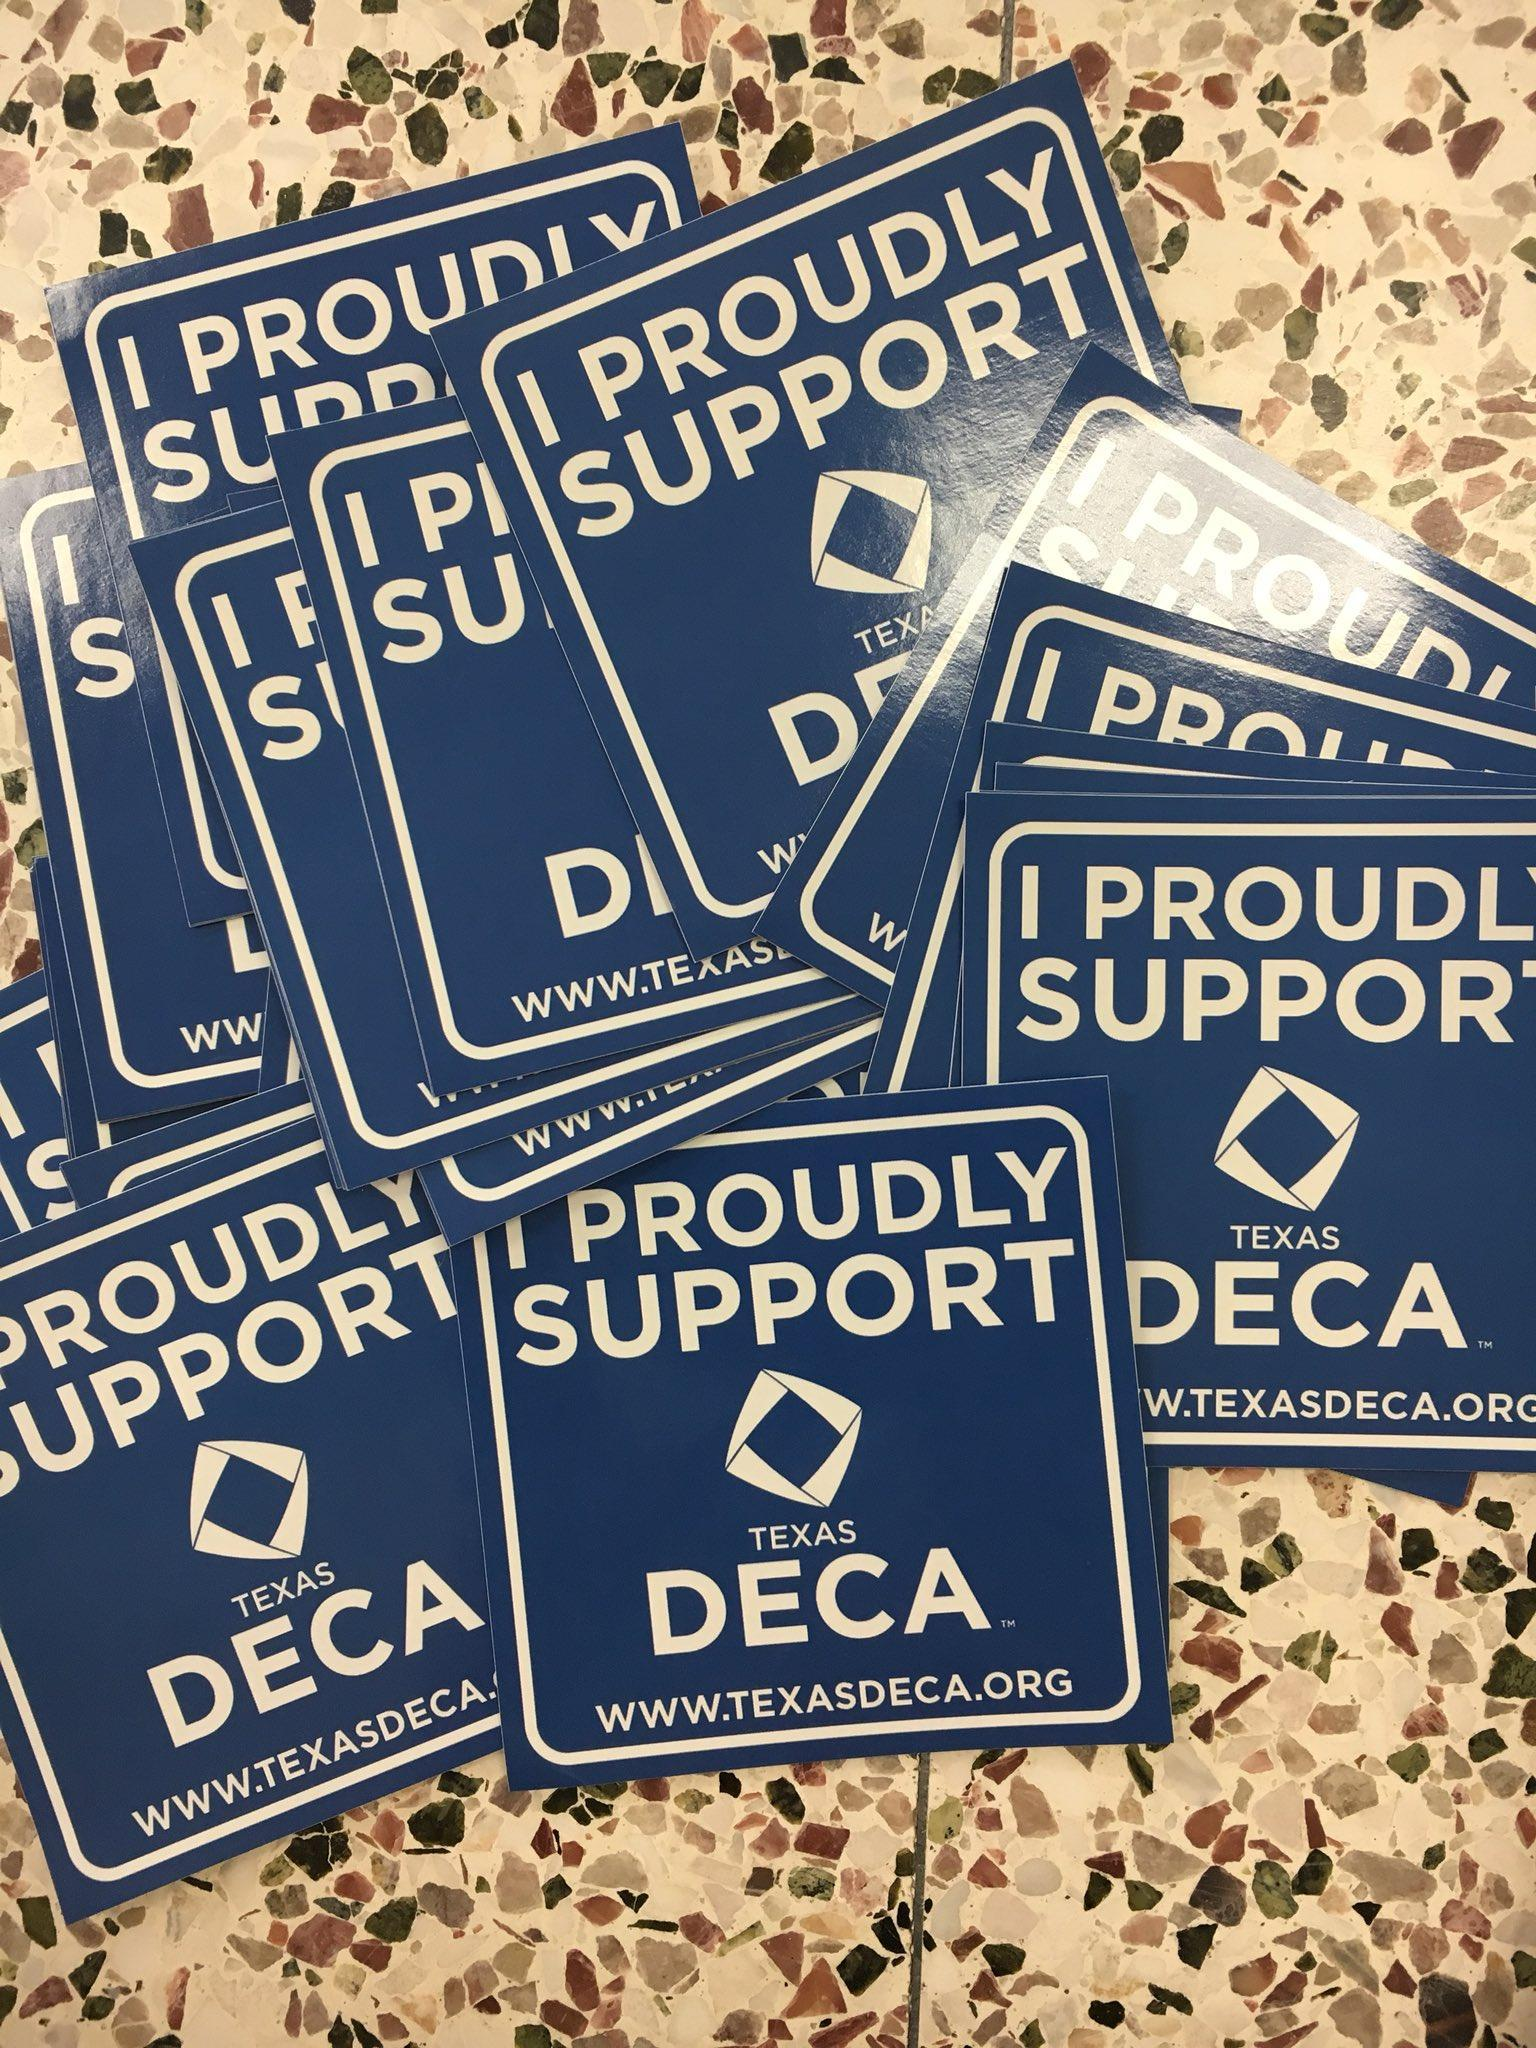 Scattered 'I proudly support DECA' signs